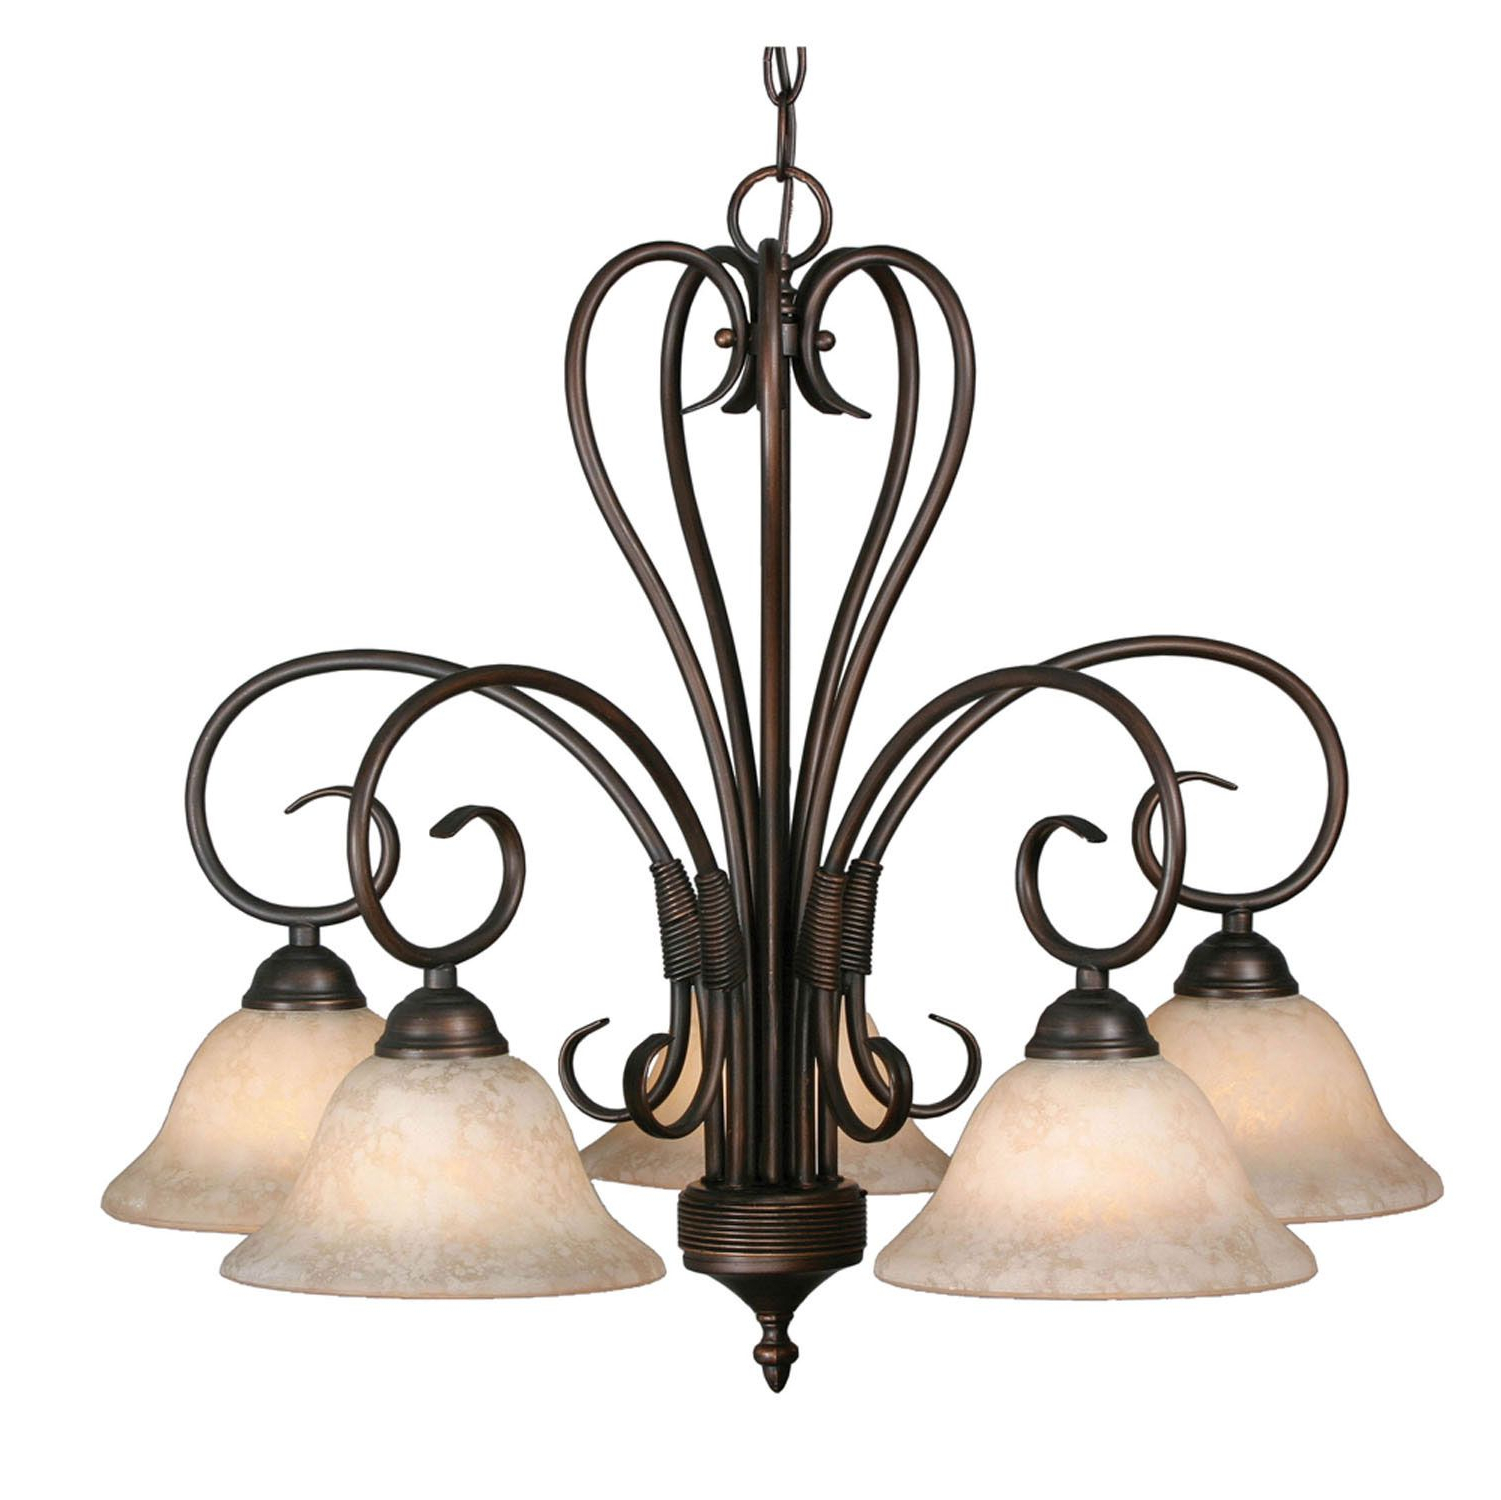 Household Needs Intended For Gaines 5 Light Shaded Chandeliers (View 12 of 20)